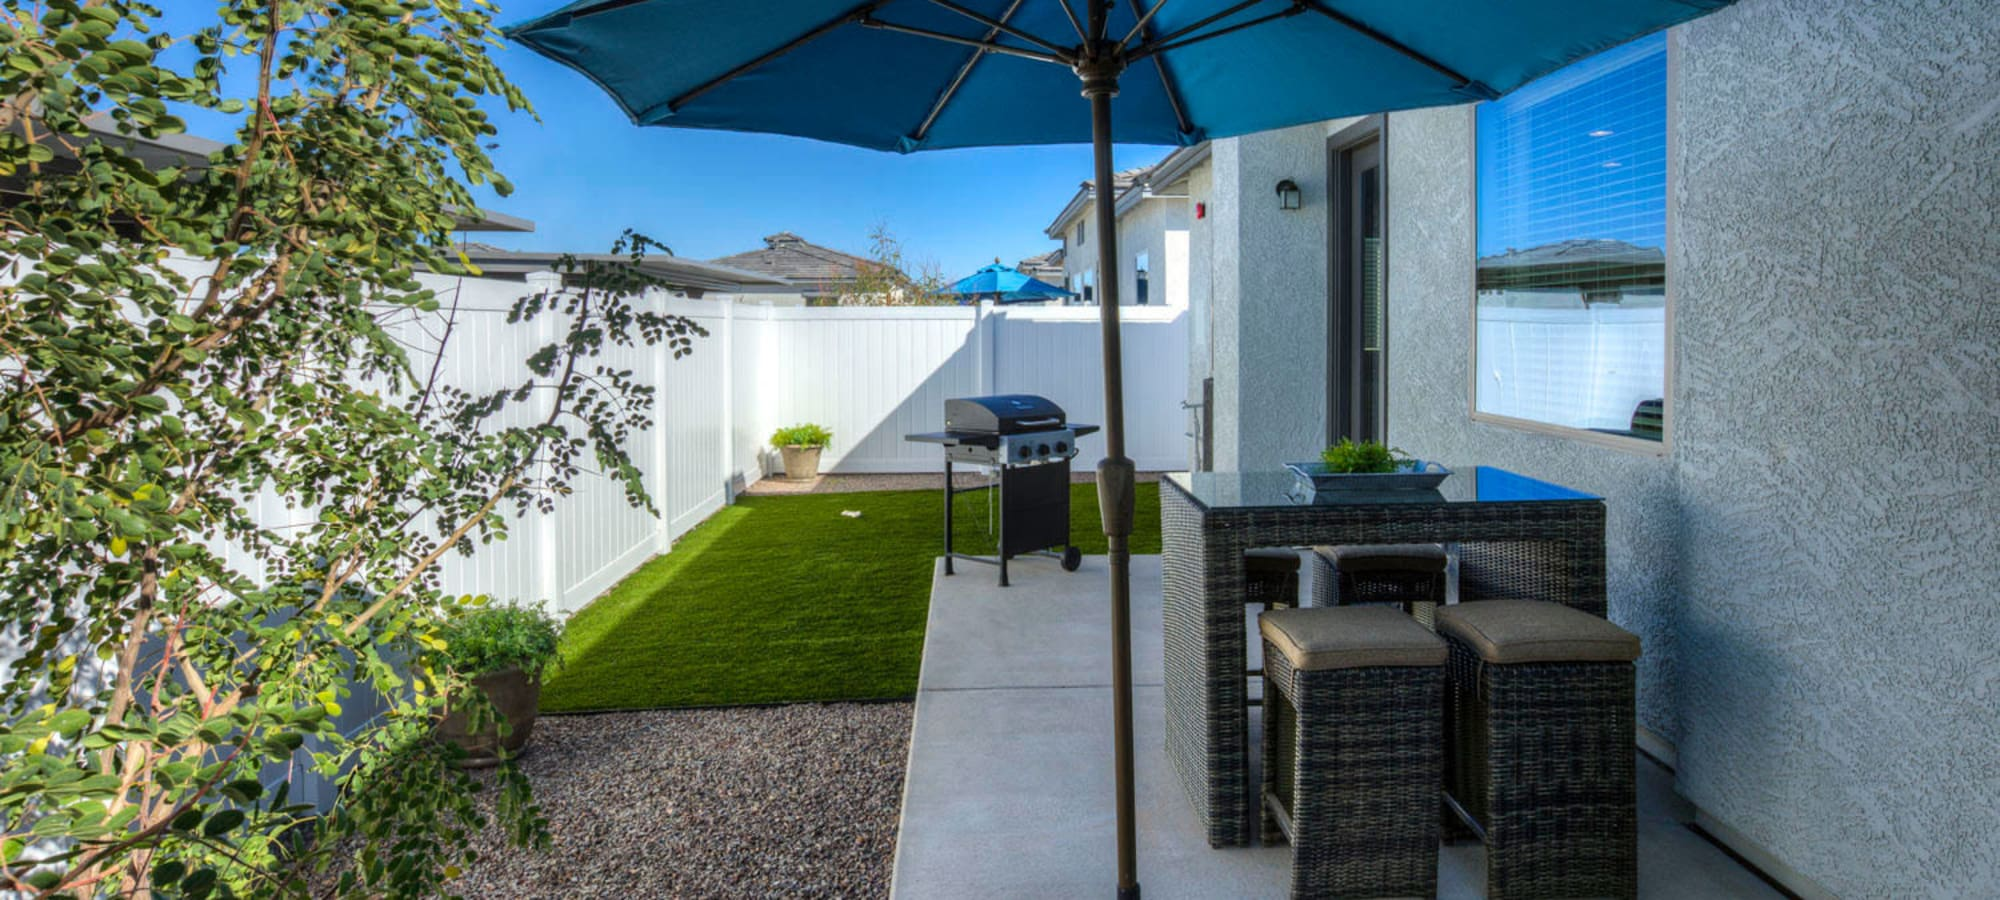 Private patio outside model home at Christopher Todd Communities At Marley Park in Surprise, Arizona